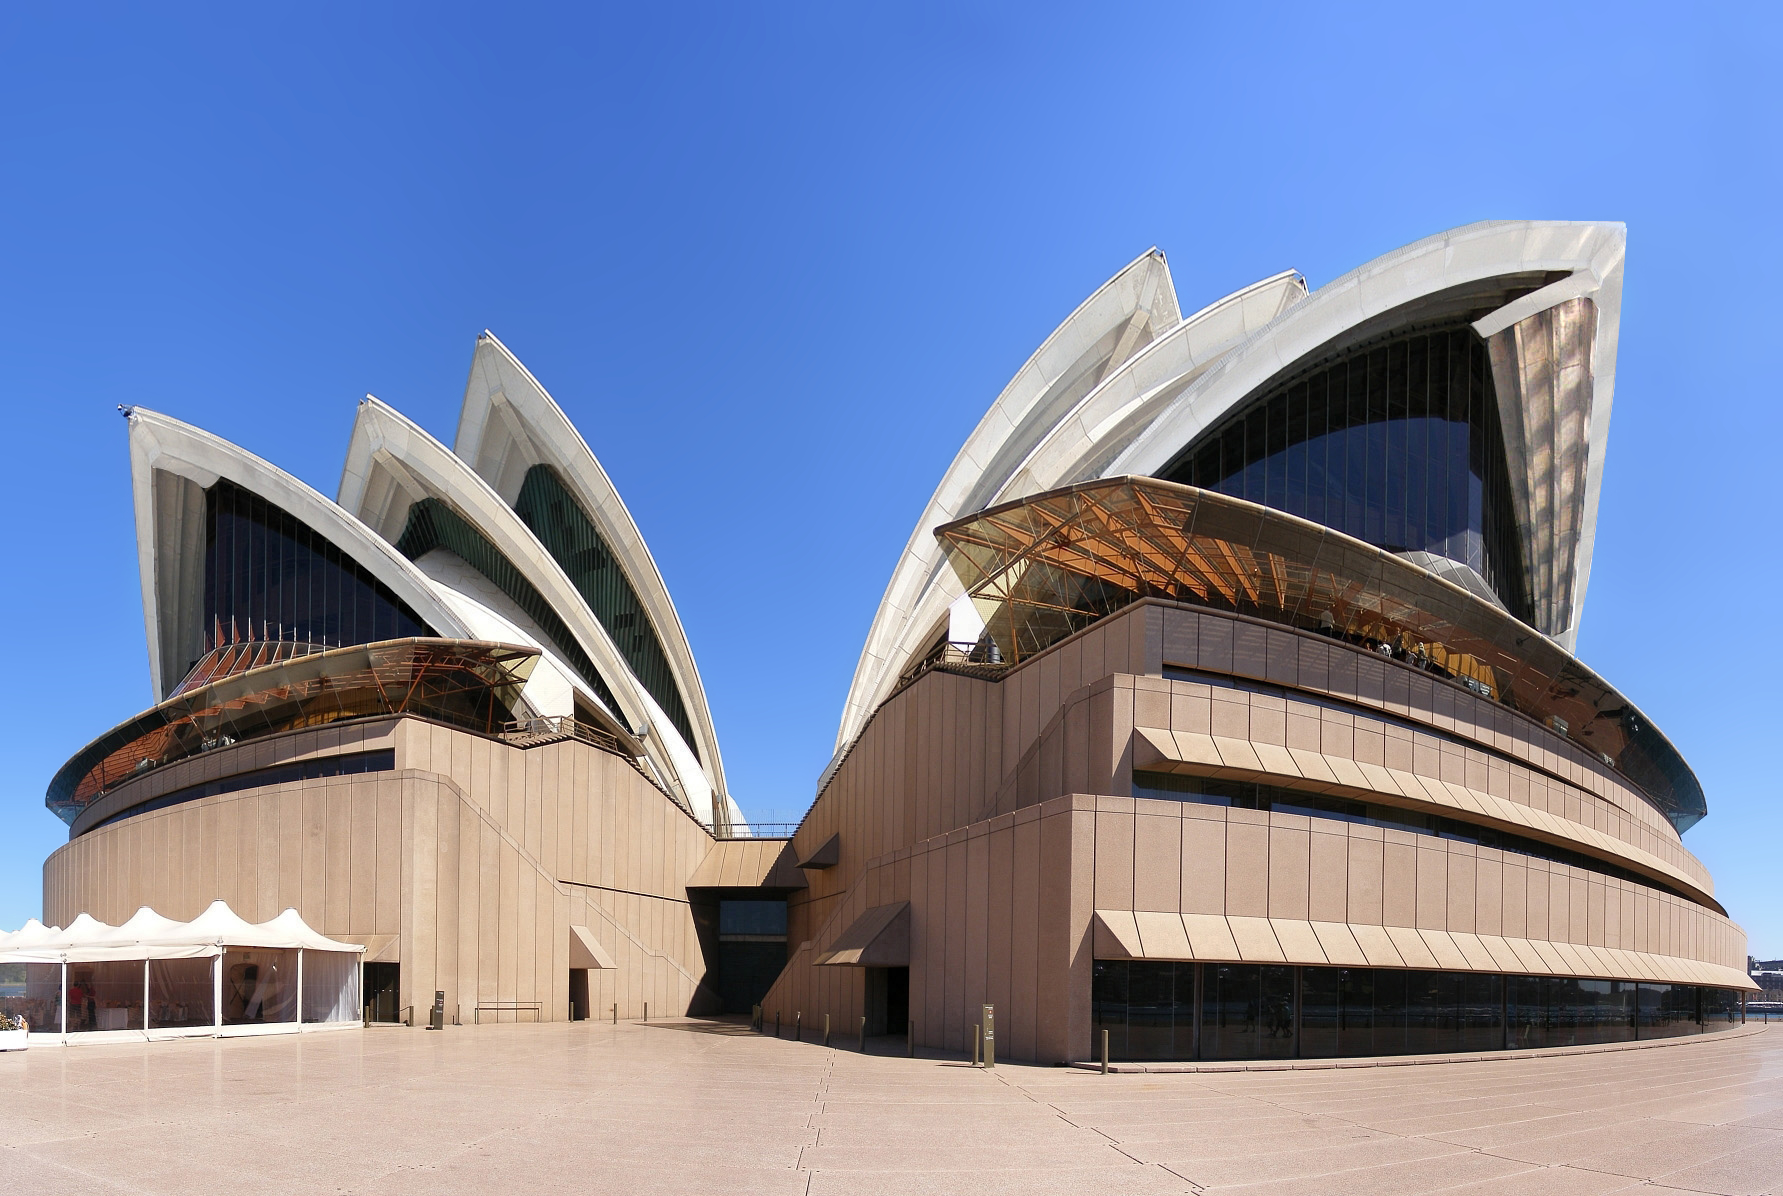 File:1 The Opera House in